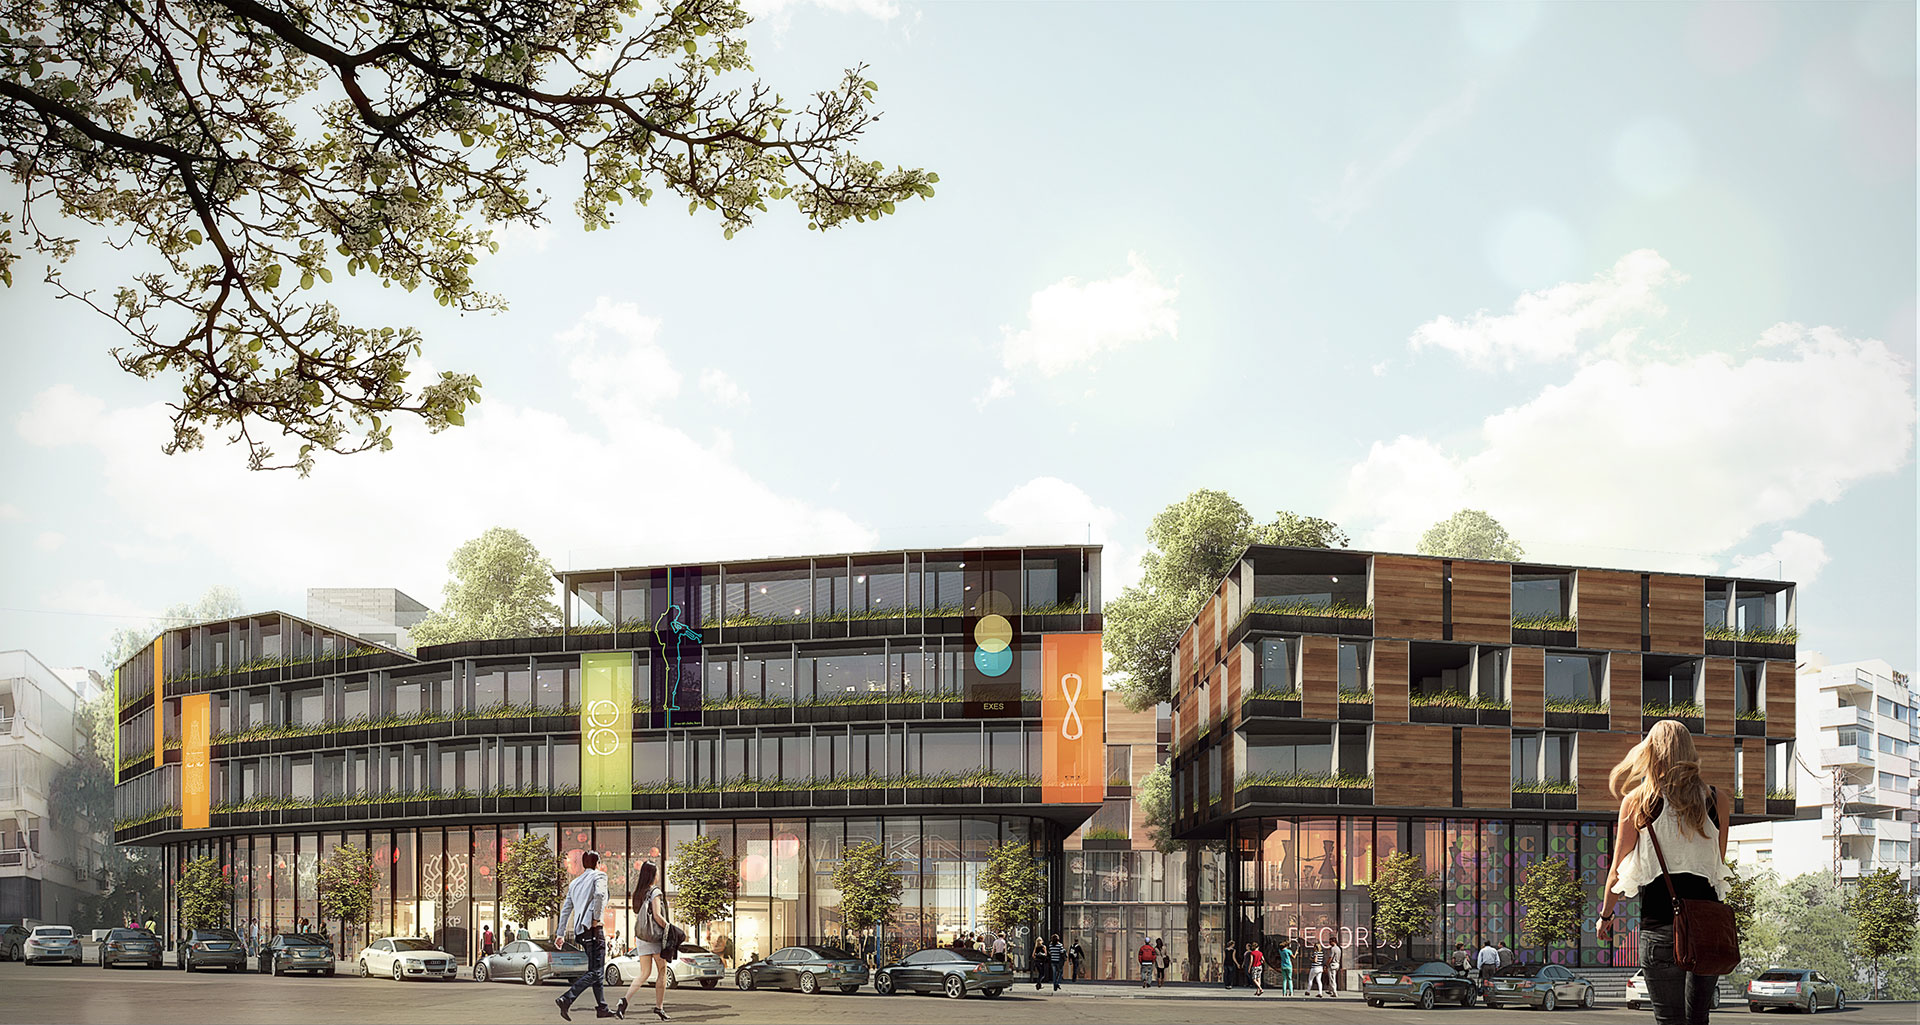 Mixed-Use Building - Competition 1st prize / Beirut, Lebanon / 109 Architects